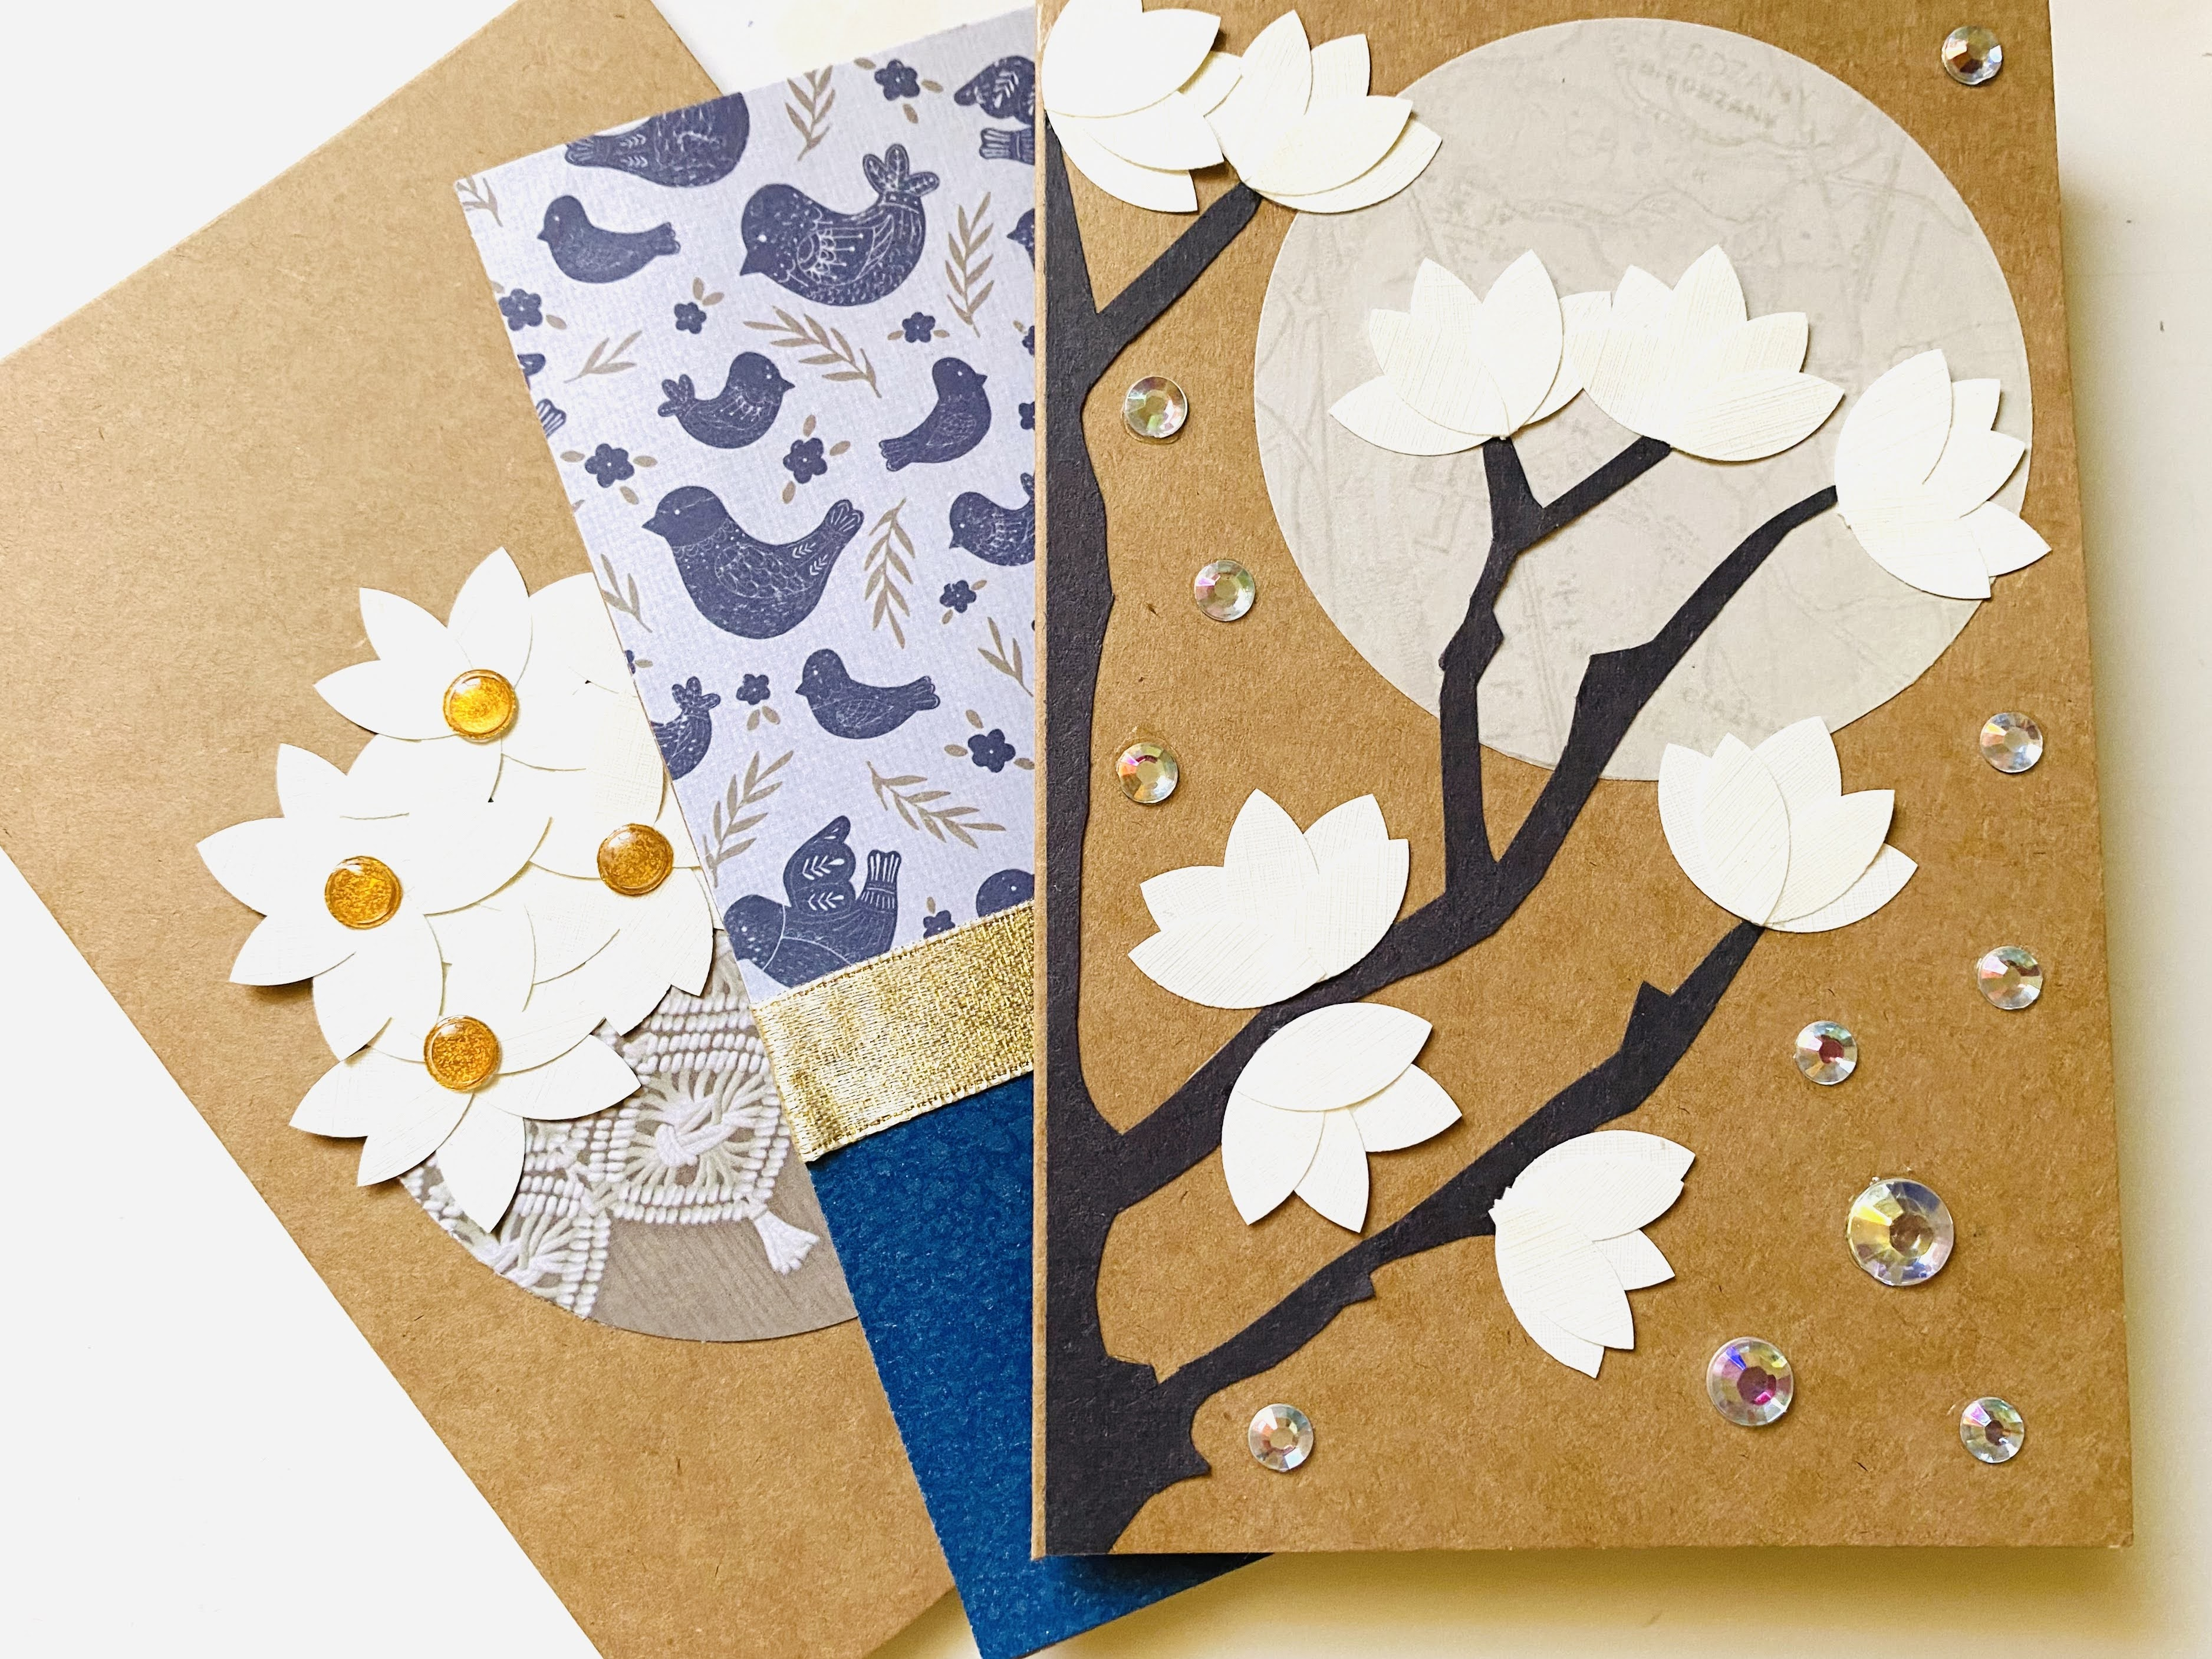 Three homemade cards with magnolias in a basket, against a patterned paper, and a magnolia tree in moonlight.